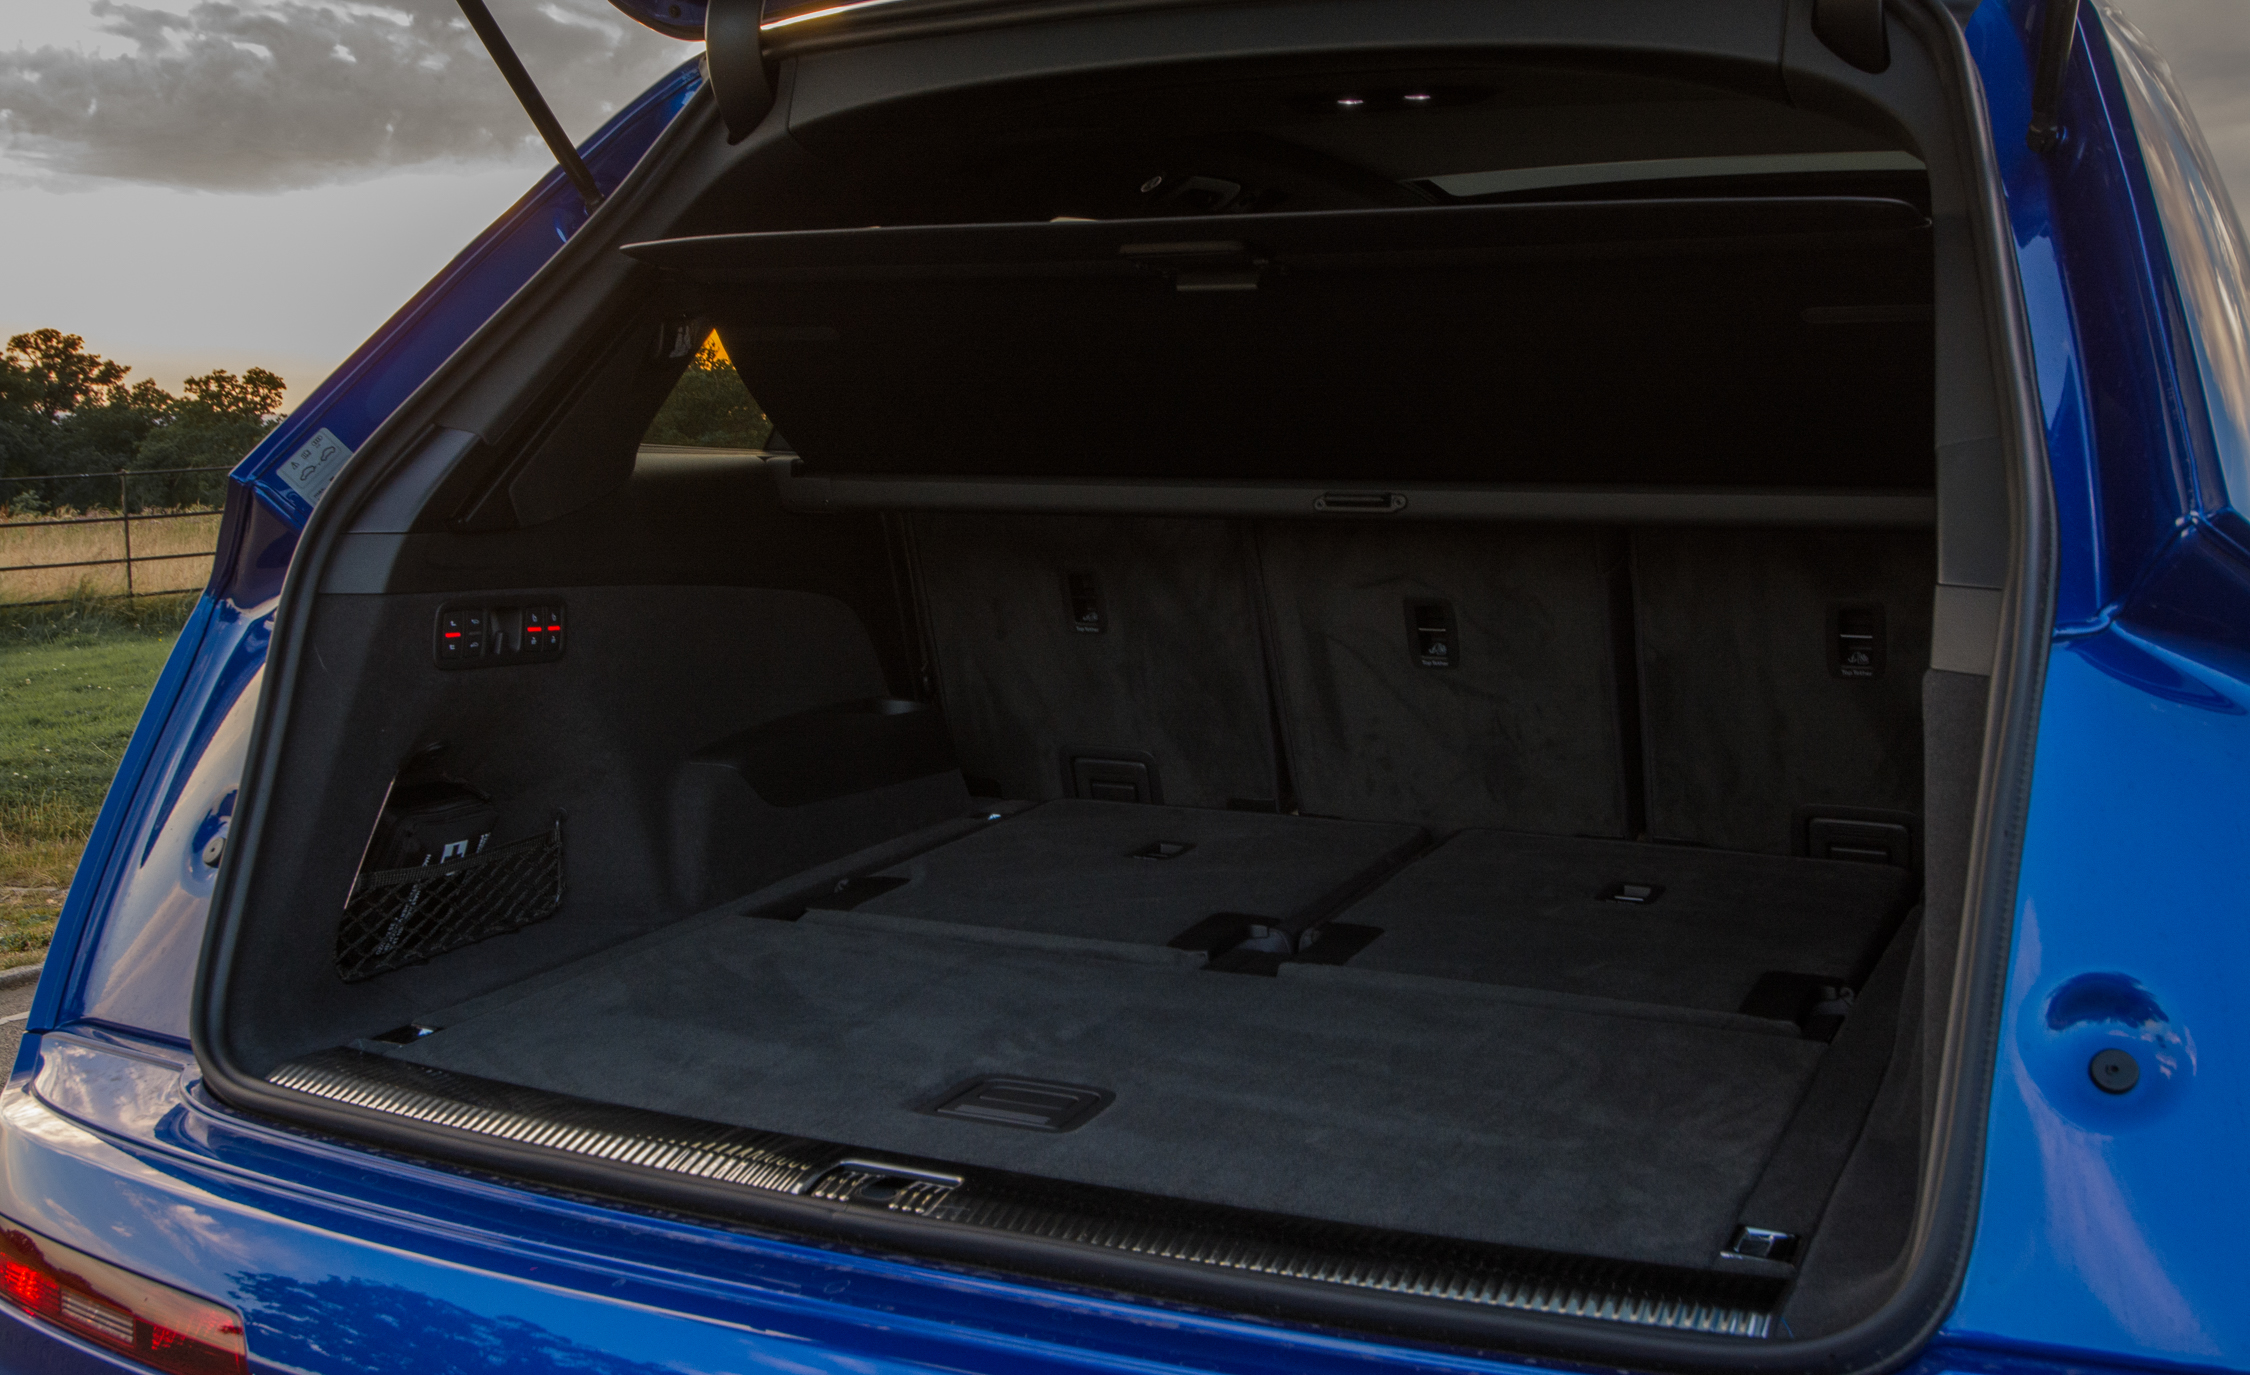 2017 Audi Sq7 Interior Trunk (View 10 of 15)